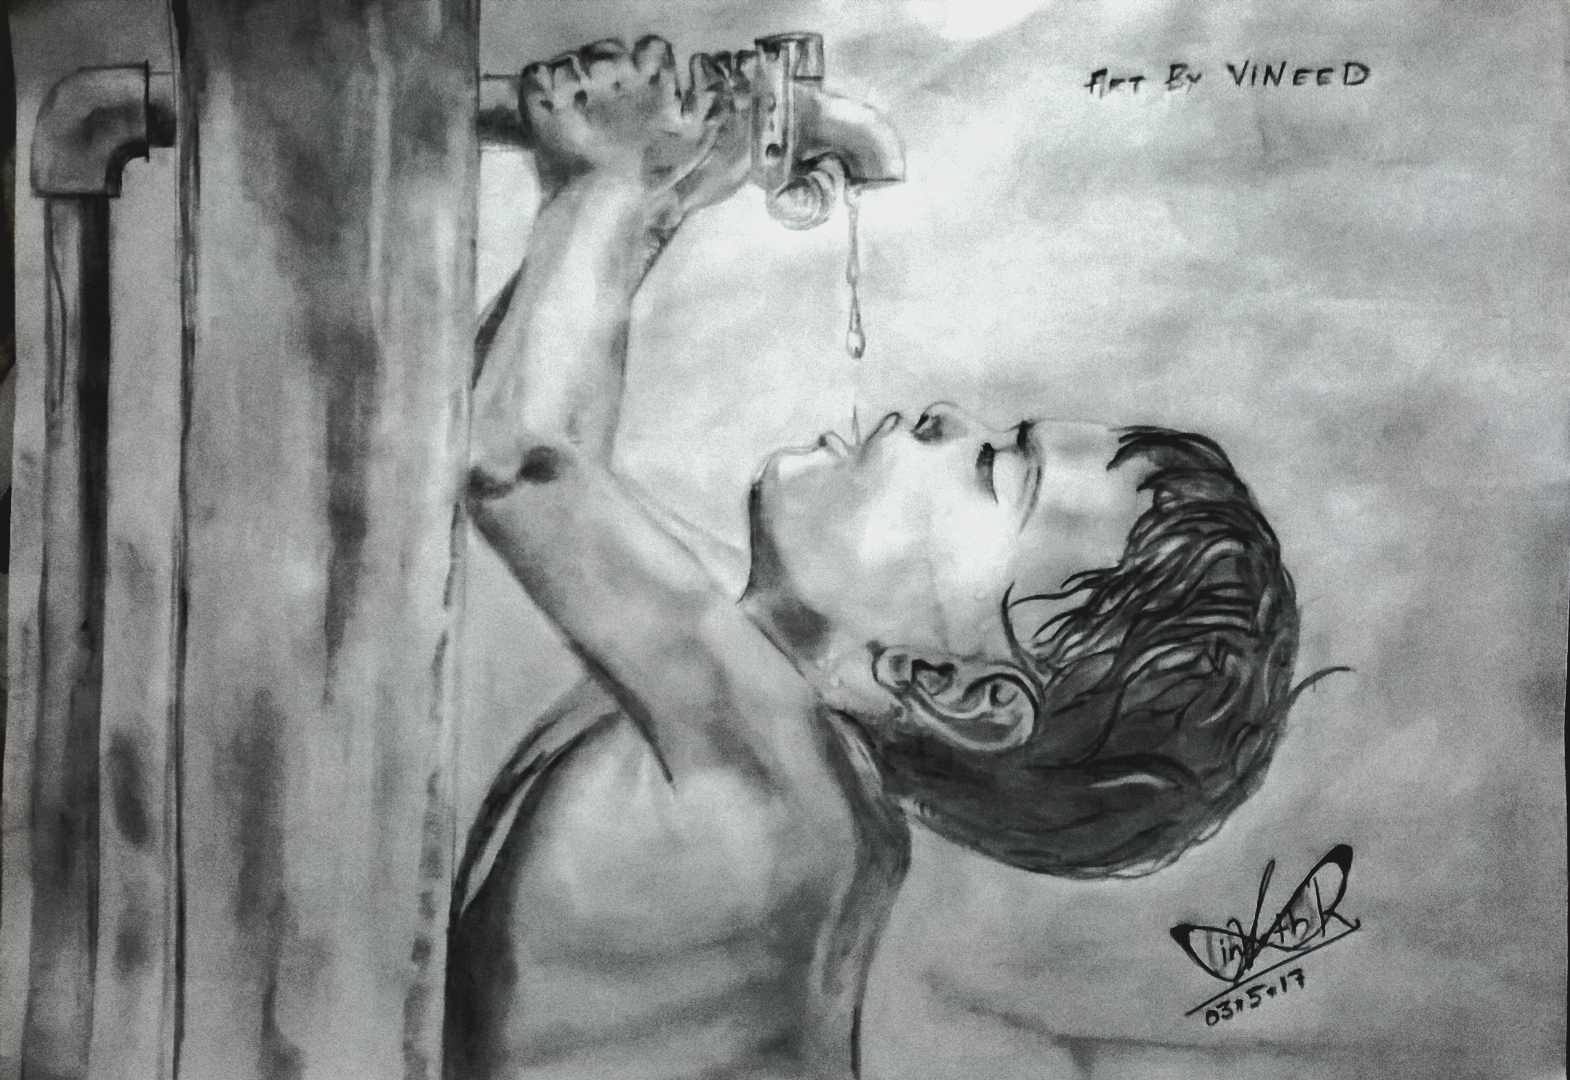 The comming water shortage pencil sketch future art